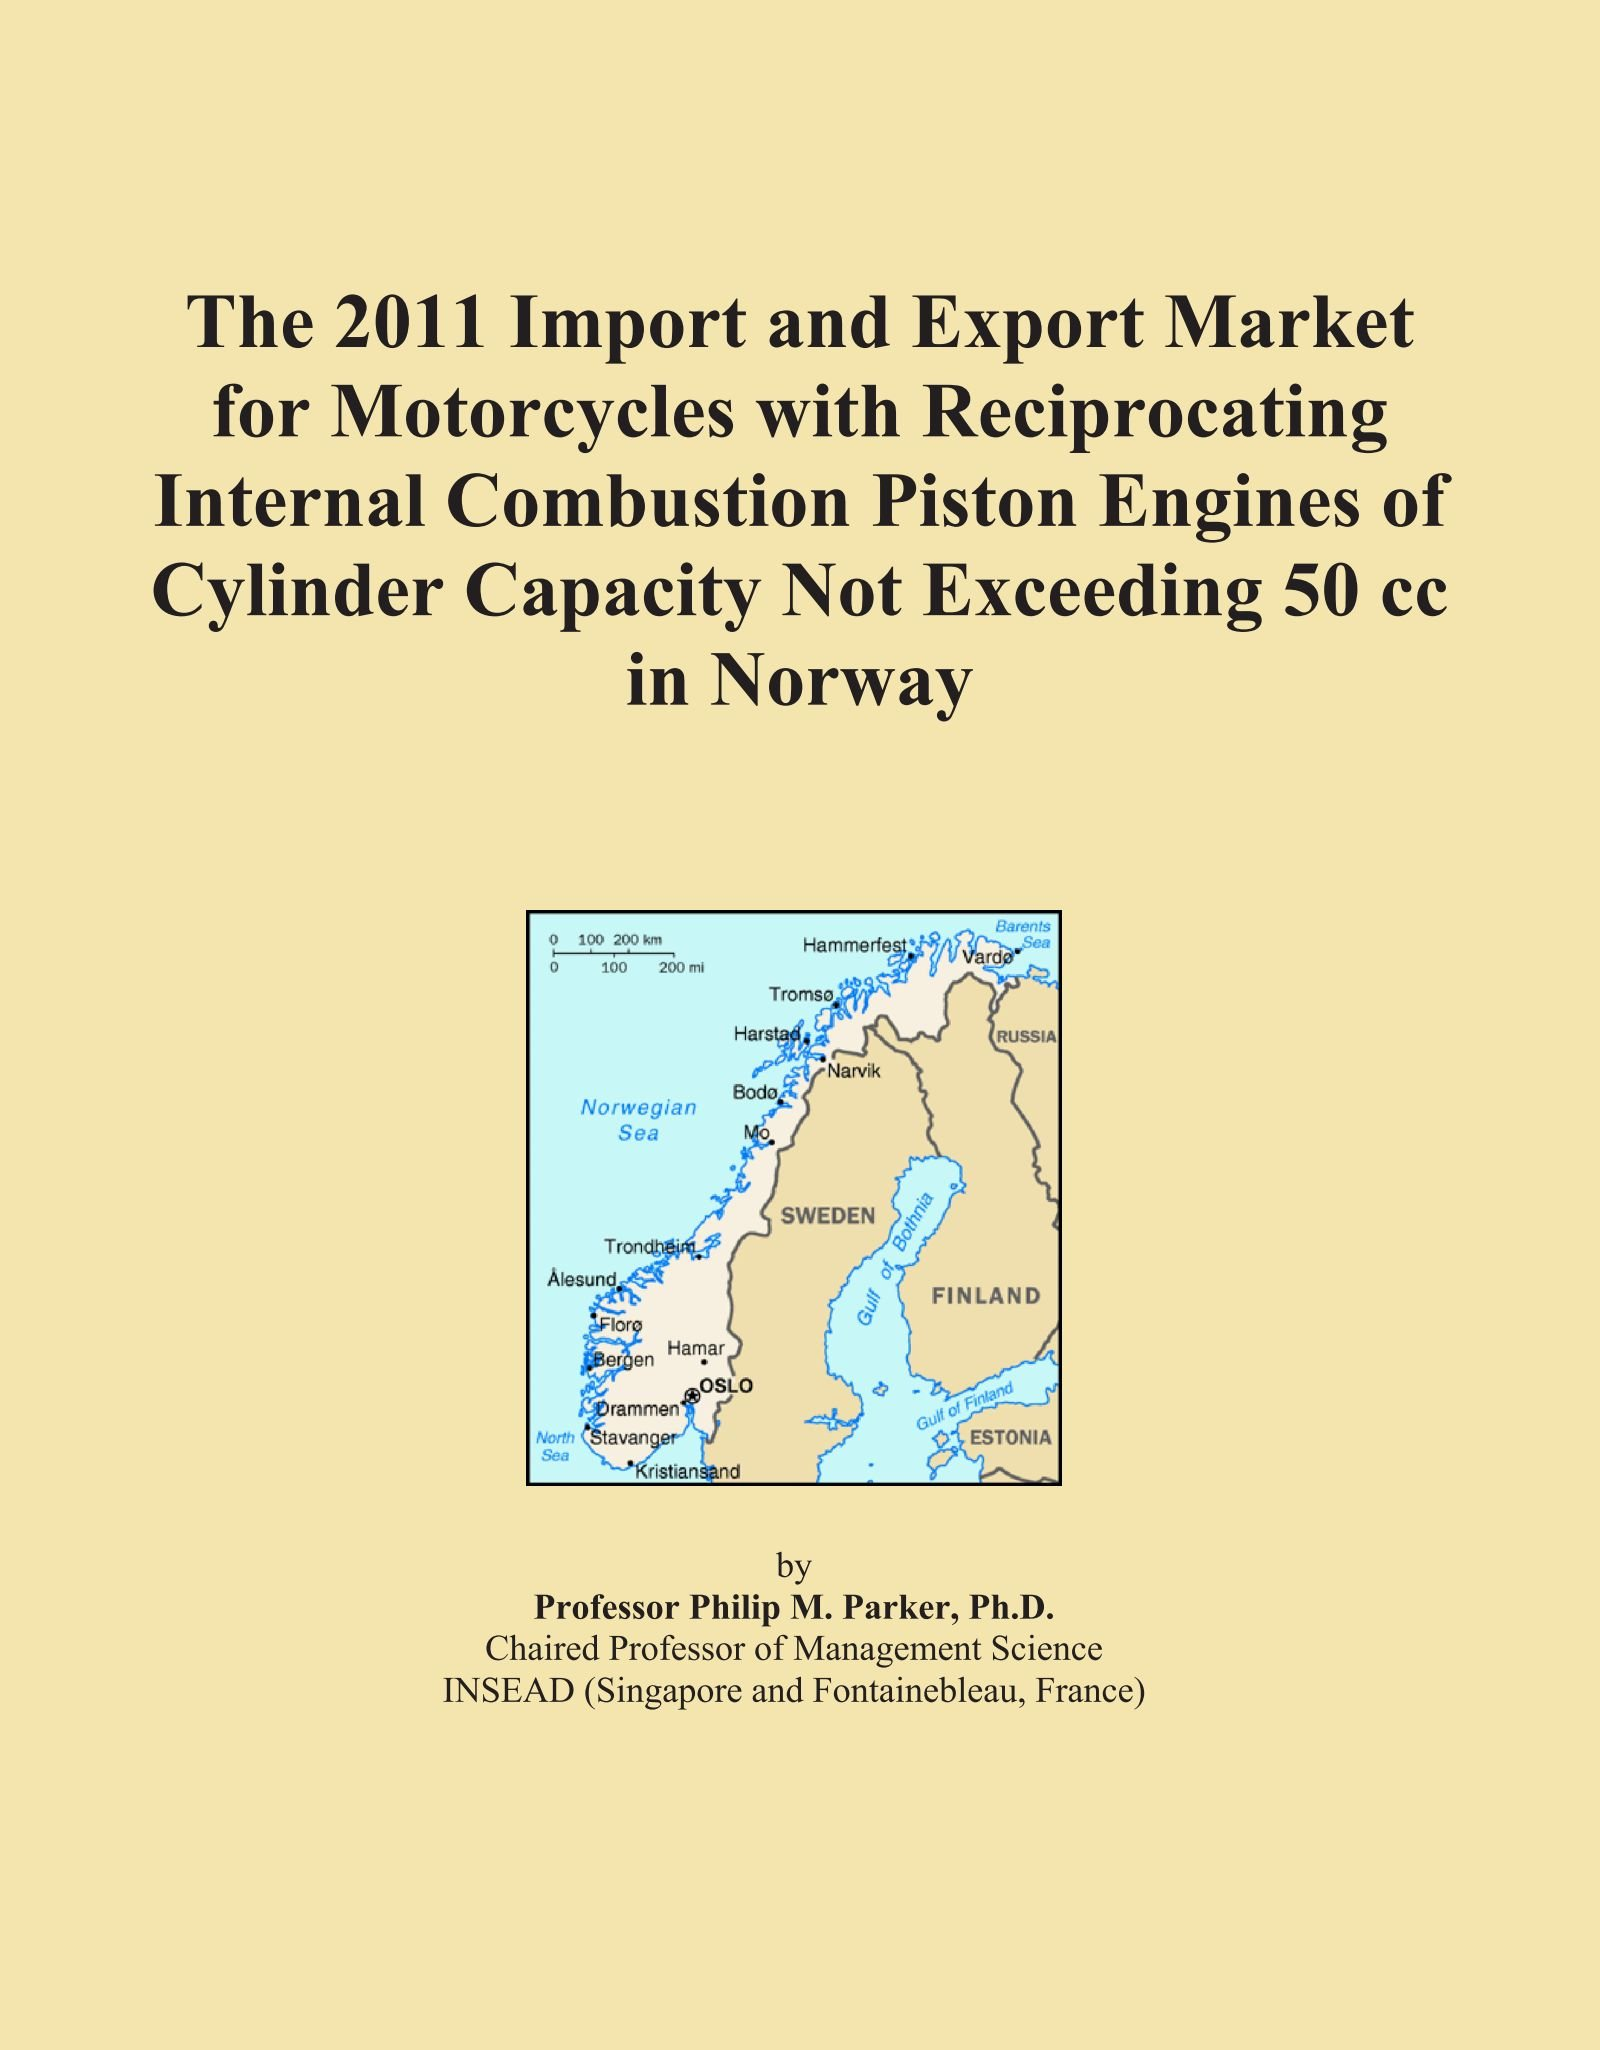 The 2011 Import and Export Market for Motorcycles with Reciprocating Internal Combustion Piston Engines of Cylinder Capacity Not Exceeding 50 cc in Norway PDF